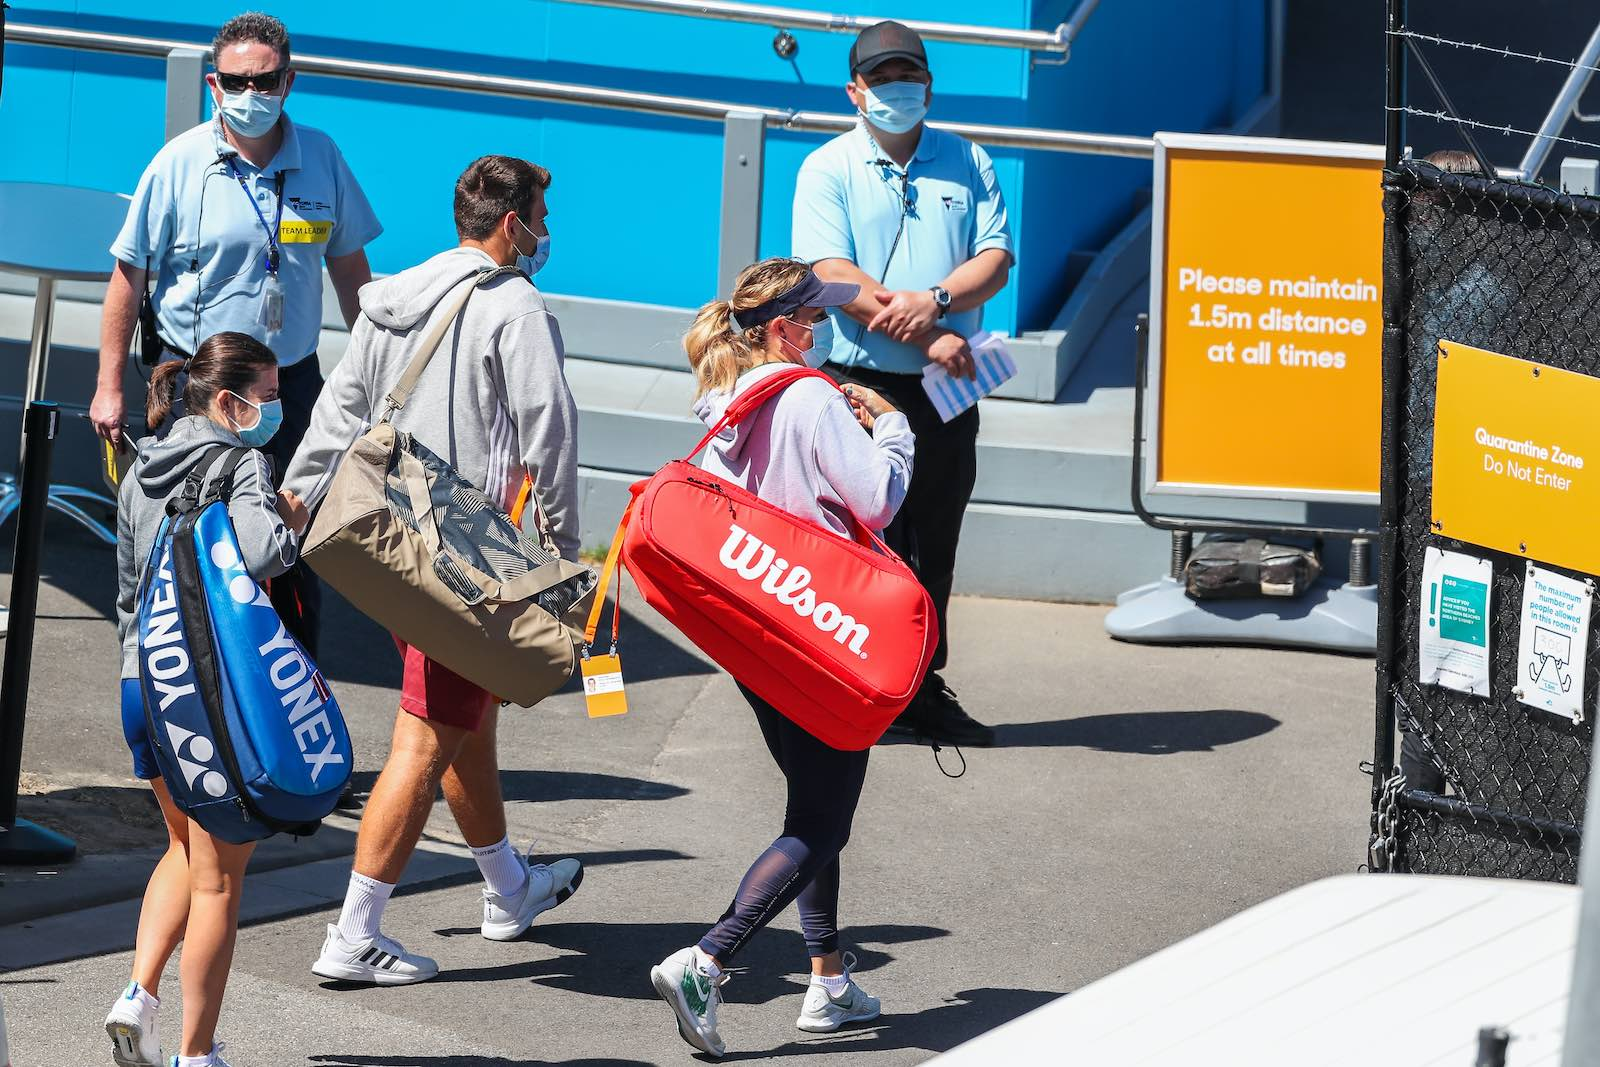 Tennis players enter the quarantine zone to train at Melbourne Park (Asanka Ratnayake/Getty Images)